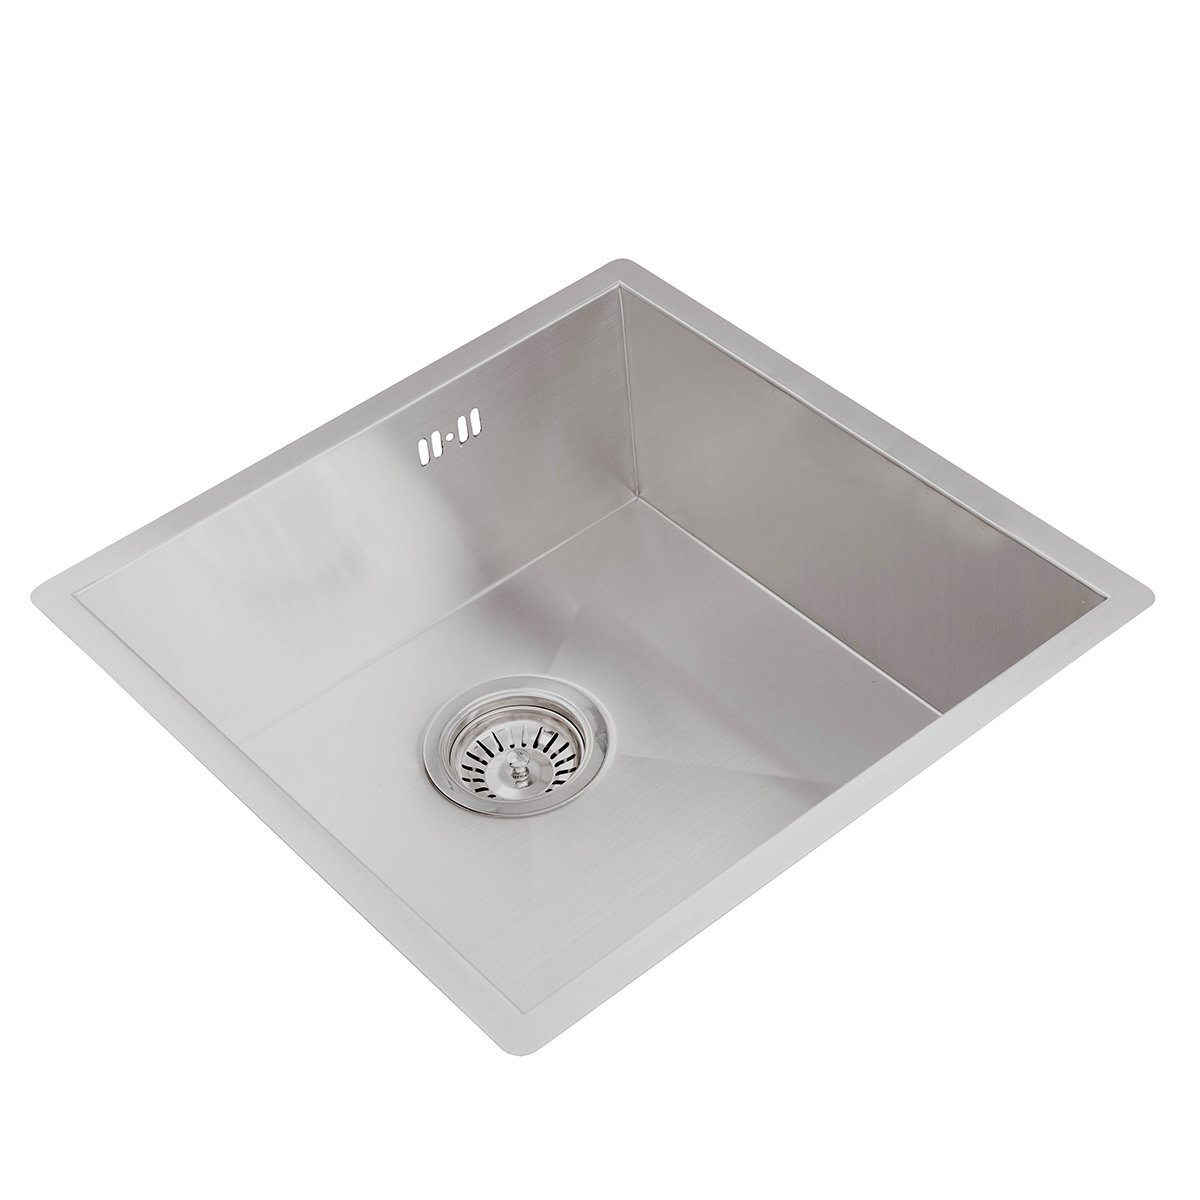 Valle Albany Reversible Inset Stainless Steel Kitchen Sink 950x500mm Single Bowl with Drainer + FREE Waste Kit